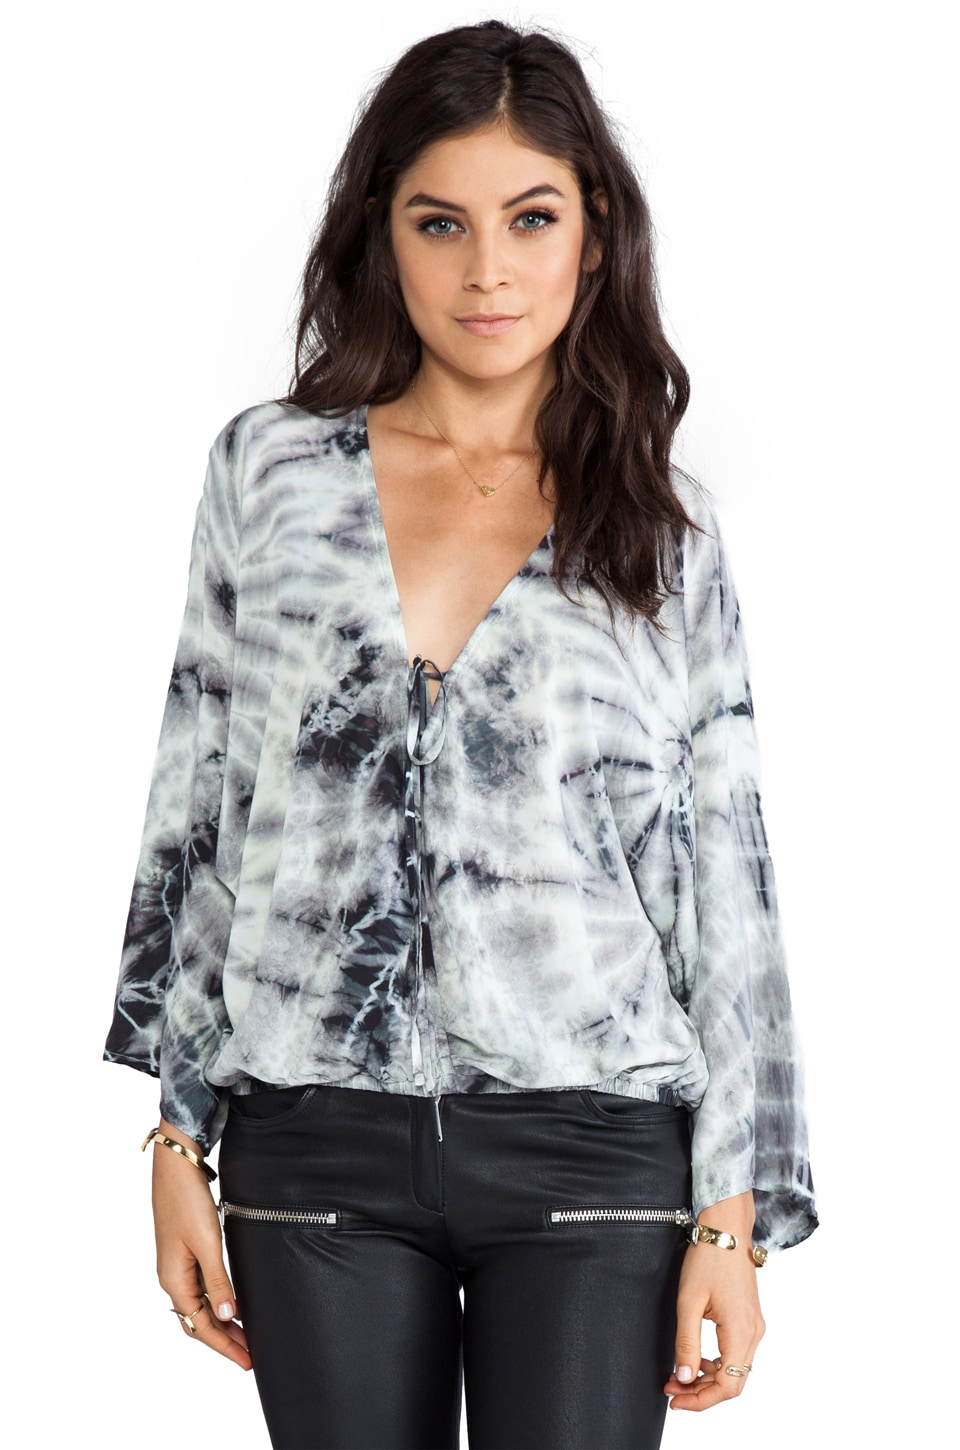 Blu Moon Kimono Criss Cross Top in Stone